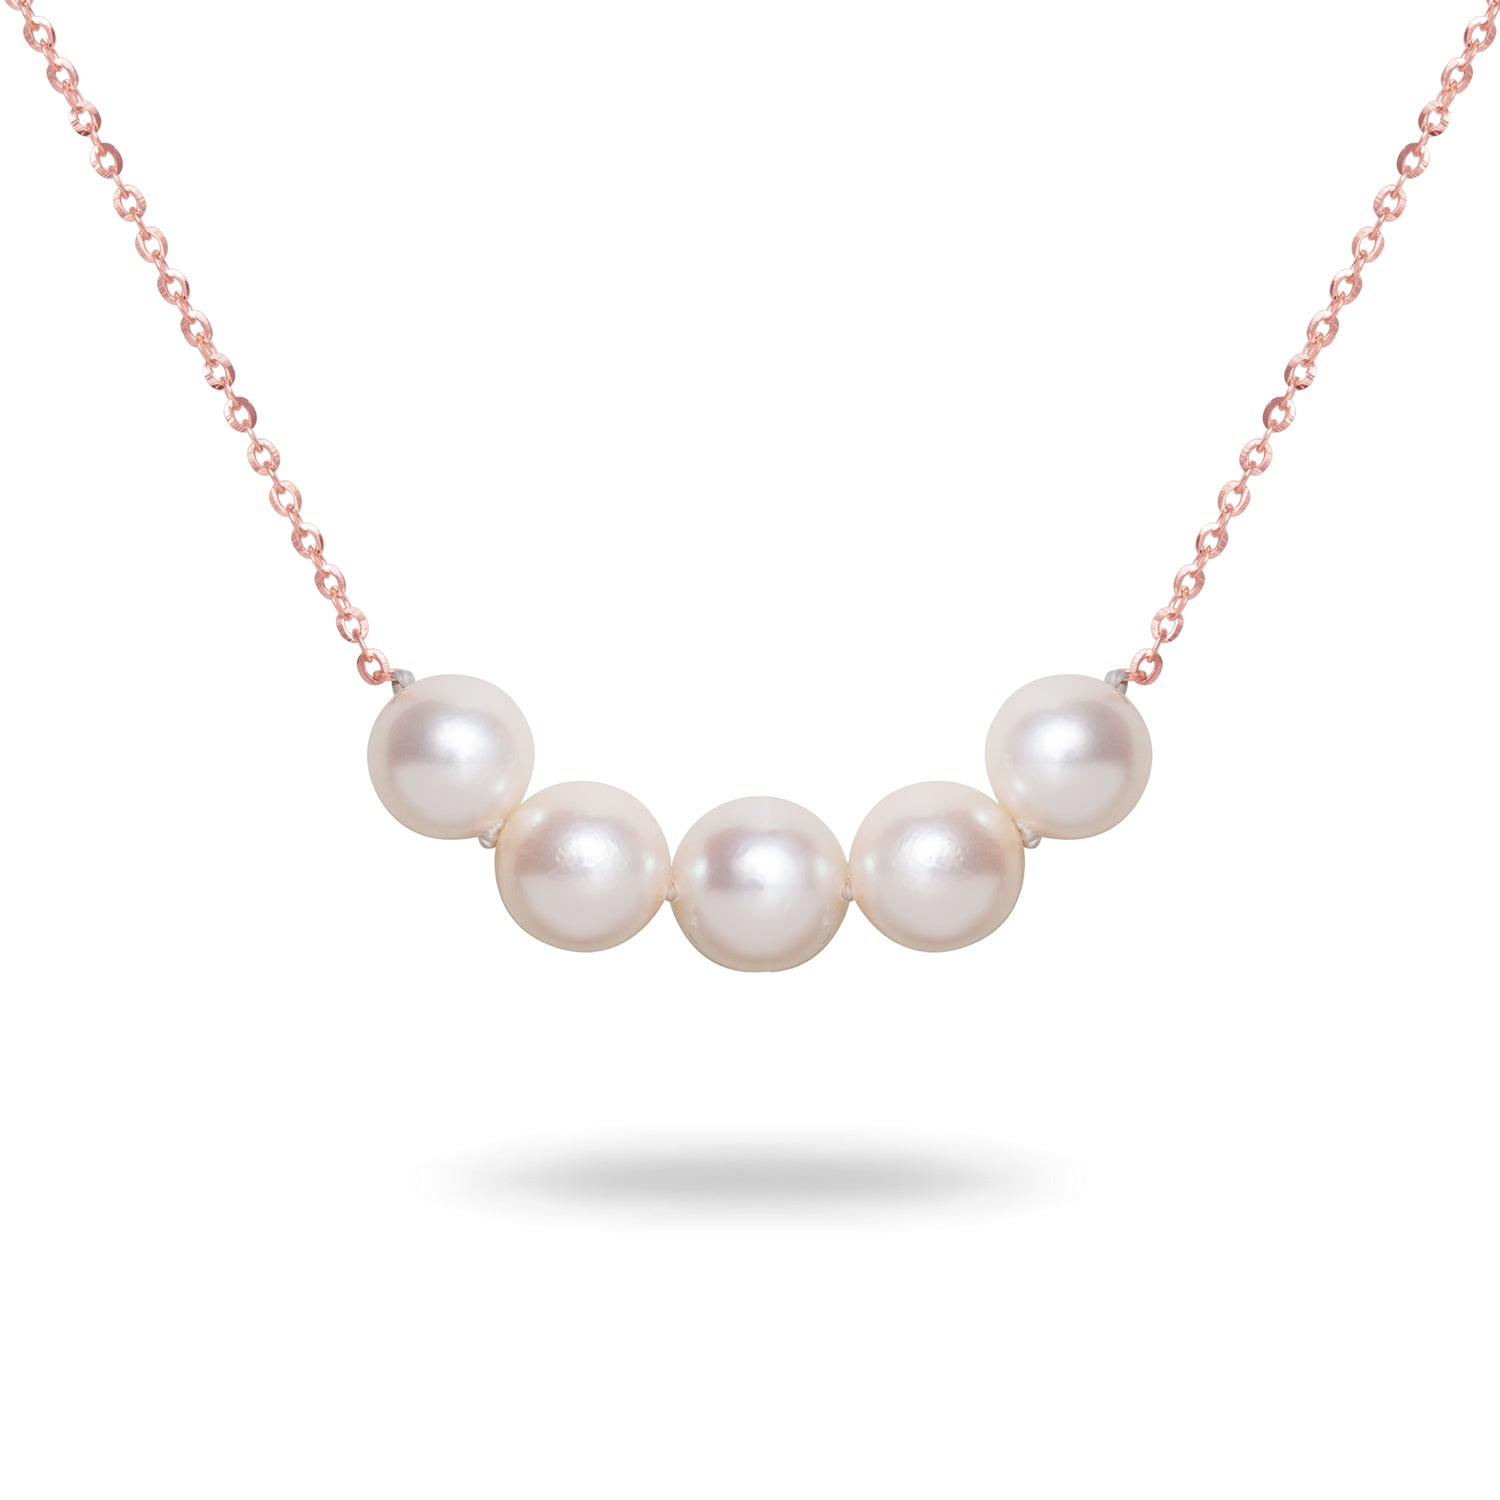 8mm White Akoya Cultured Pearl Necklace